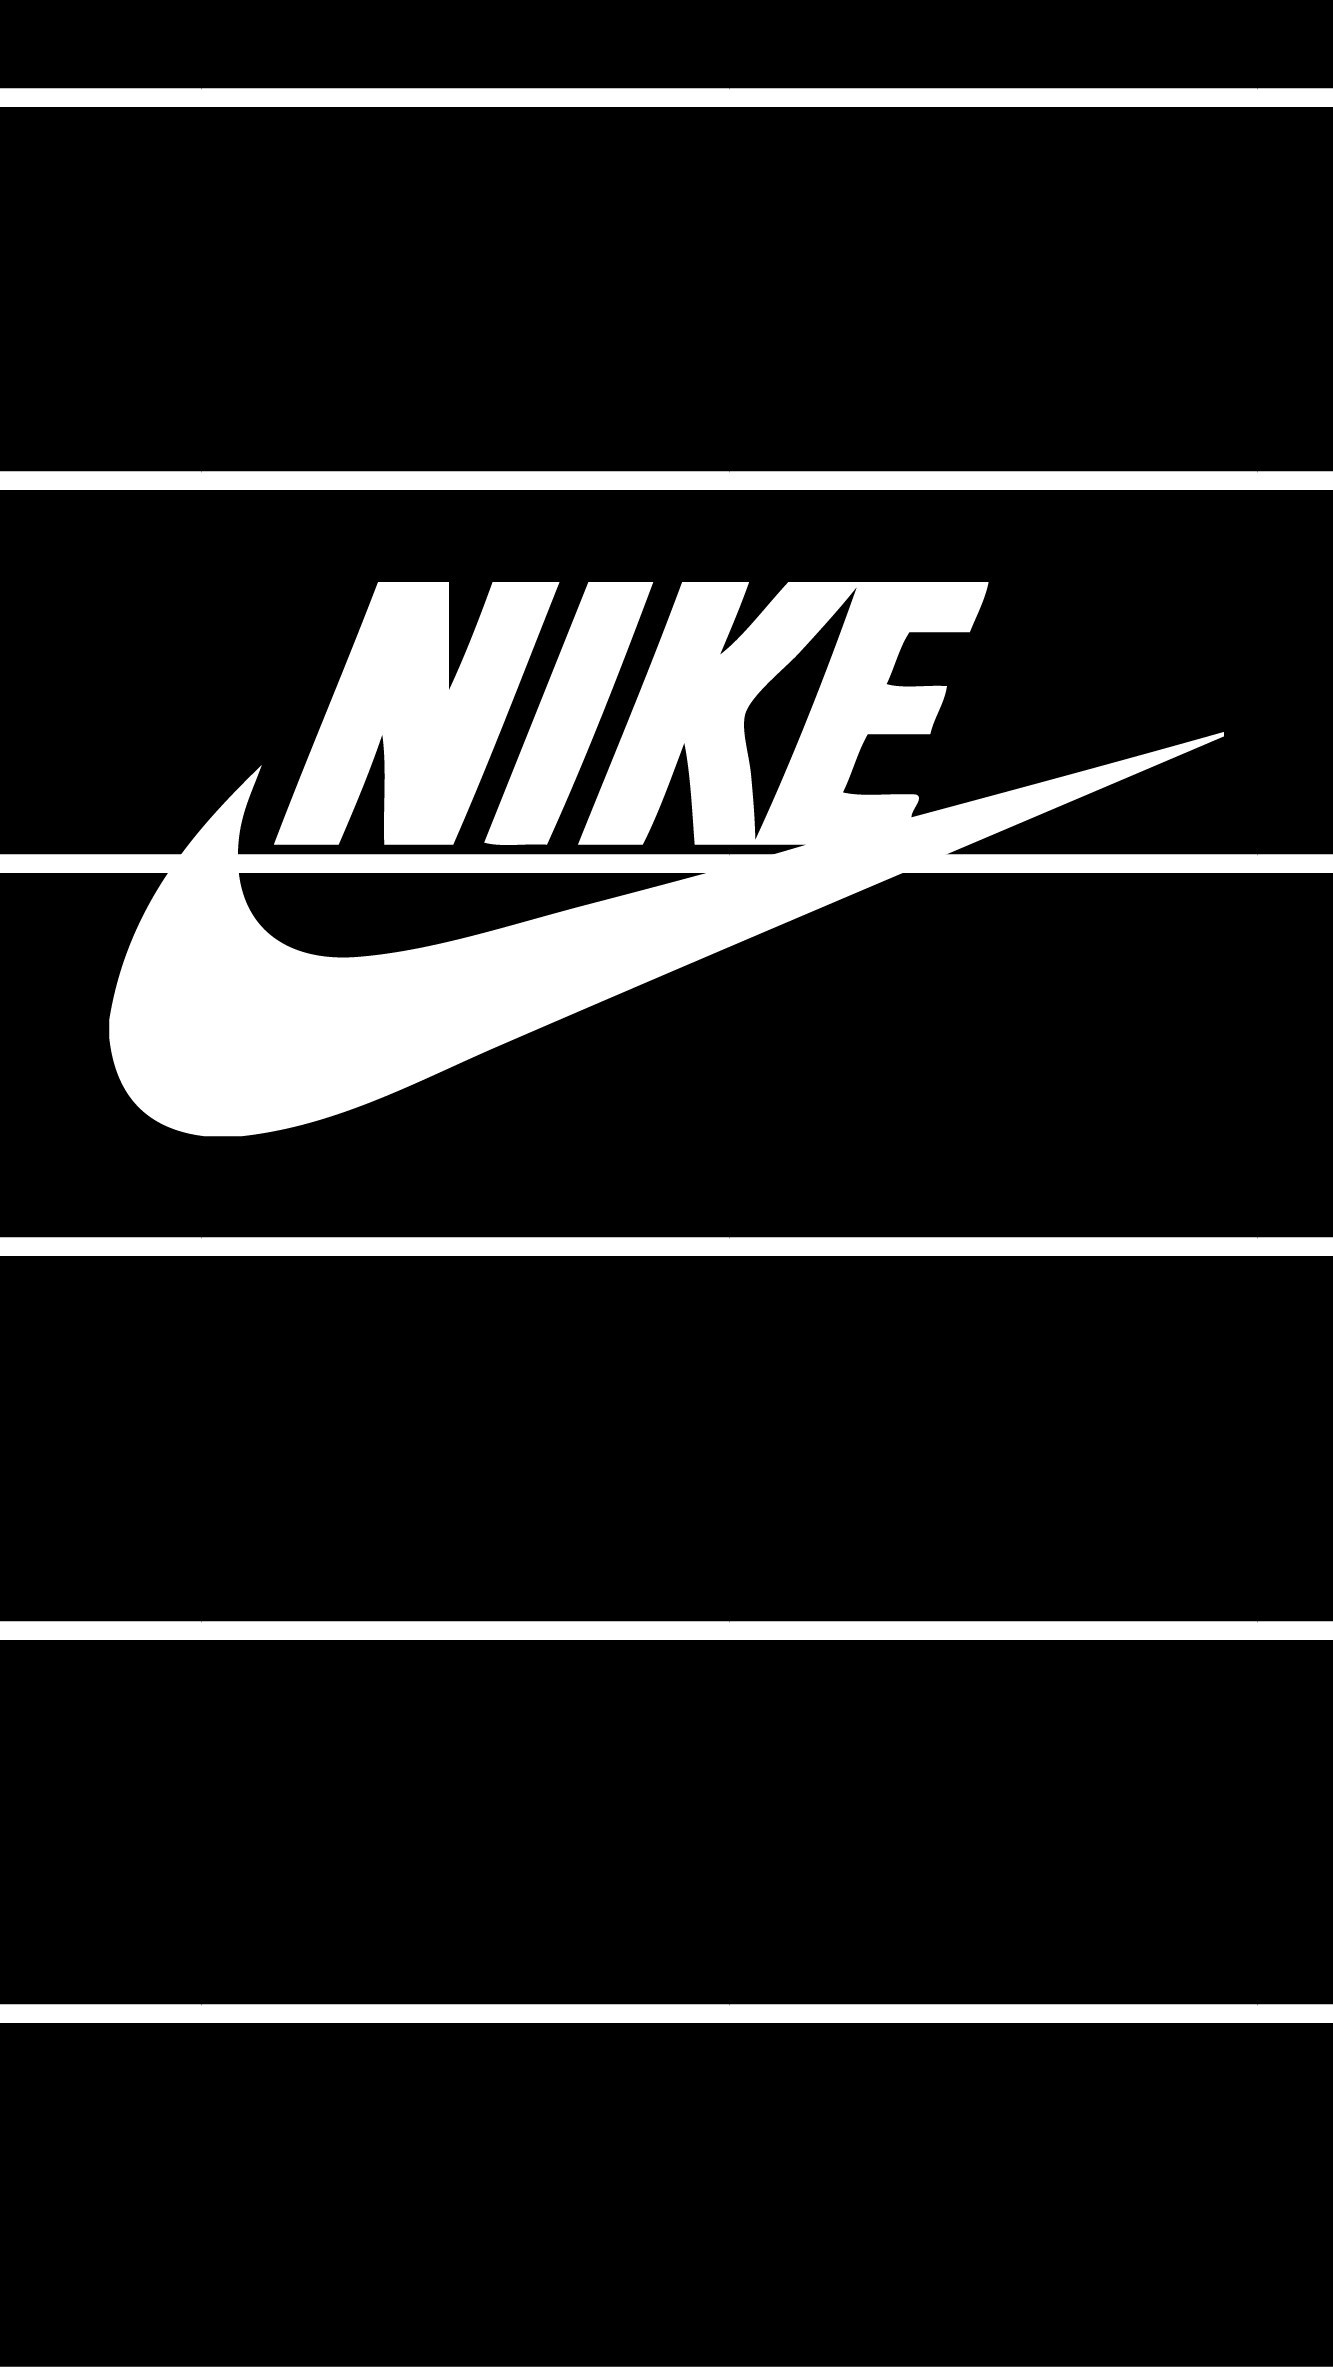 Nike Quote Iphone Wallpaper 78 Images